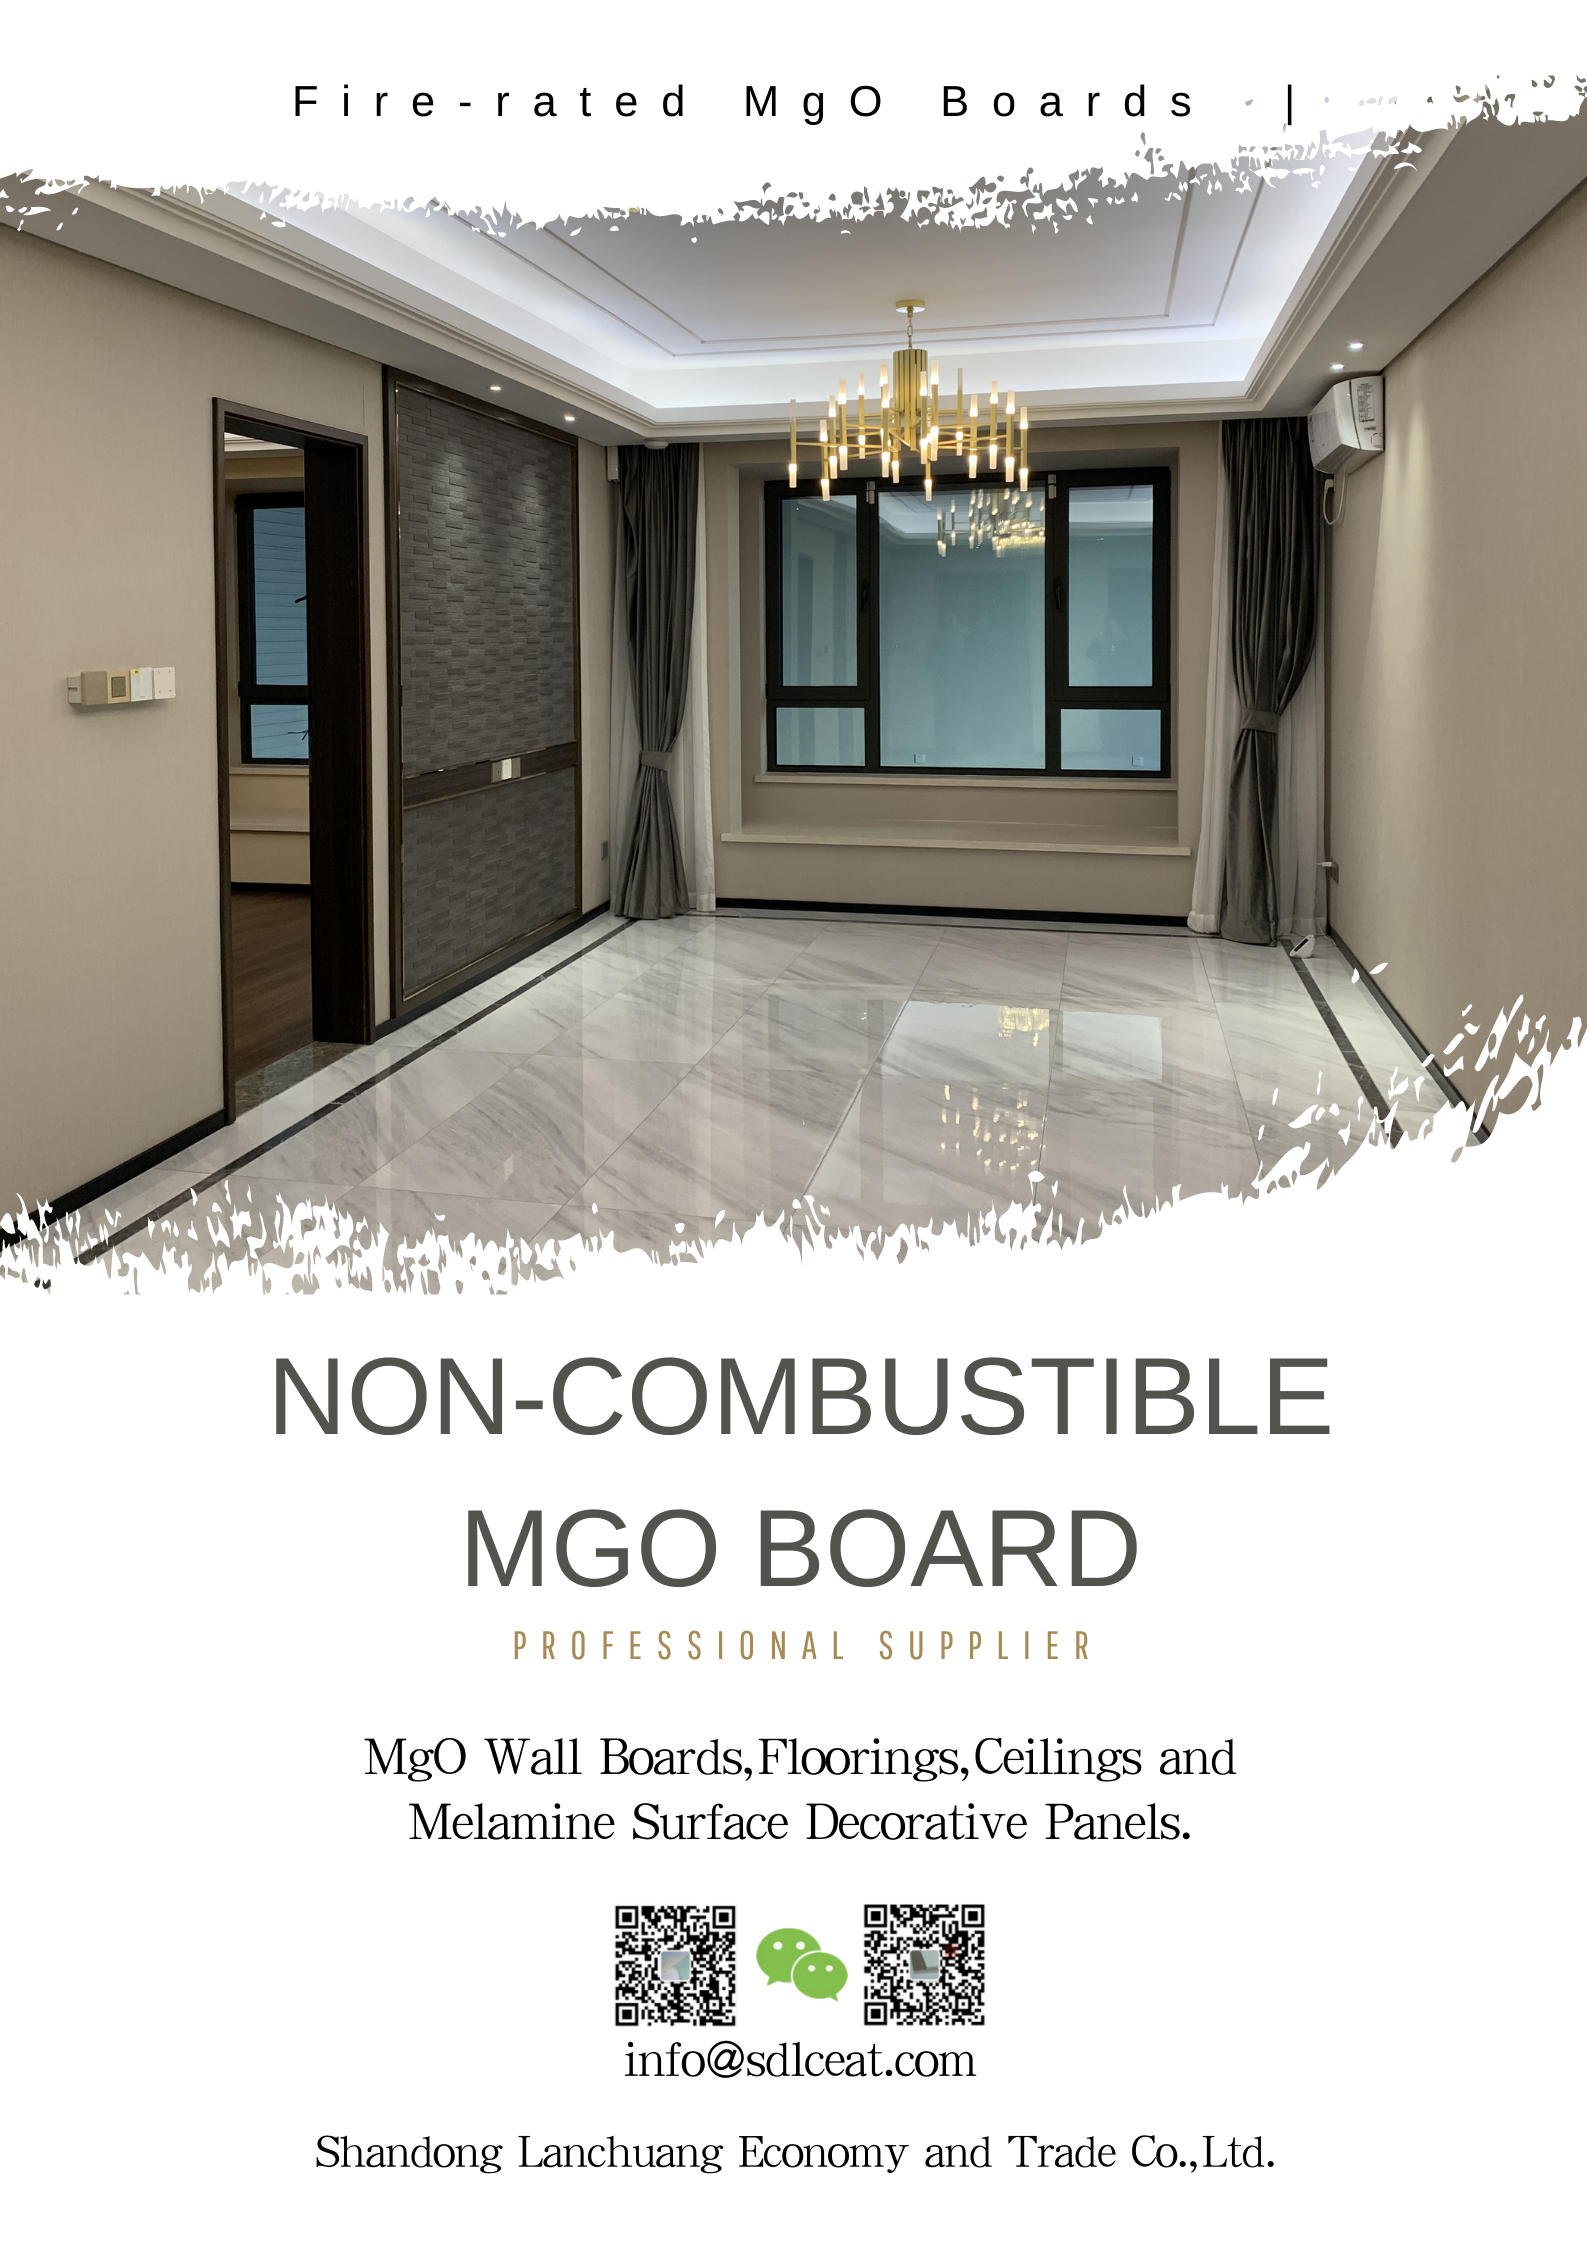 mgo board fire resistant properties